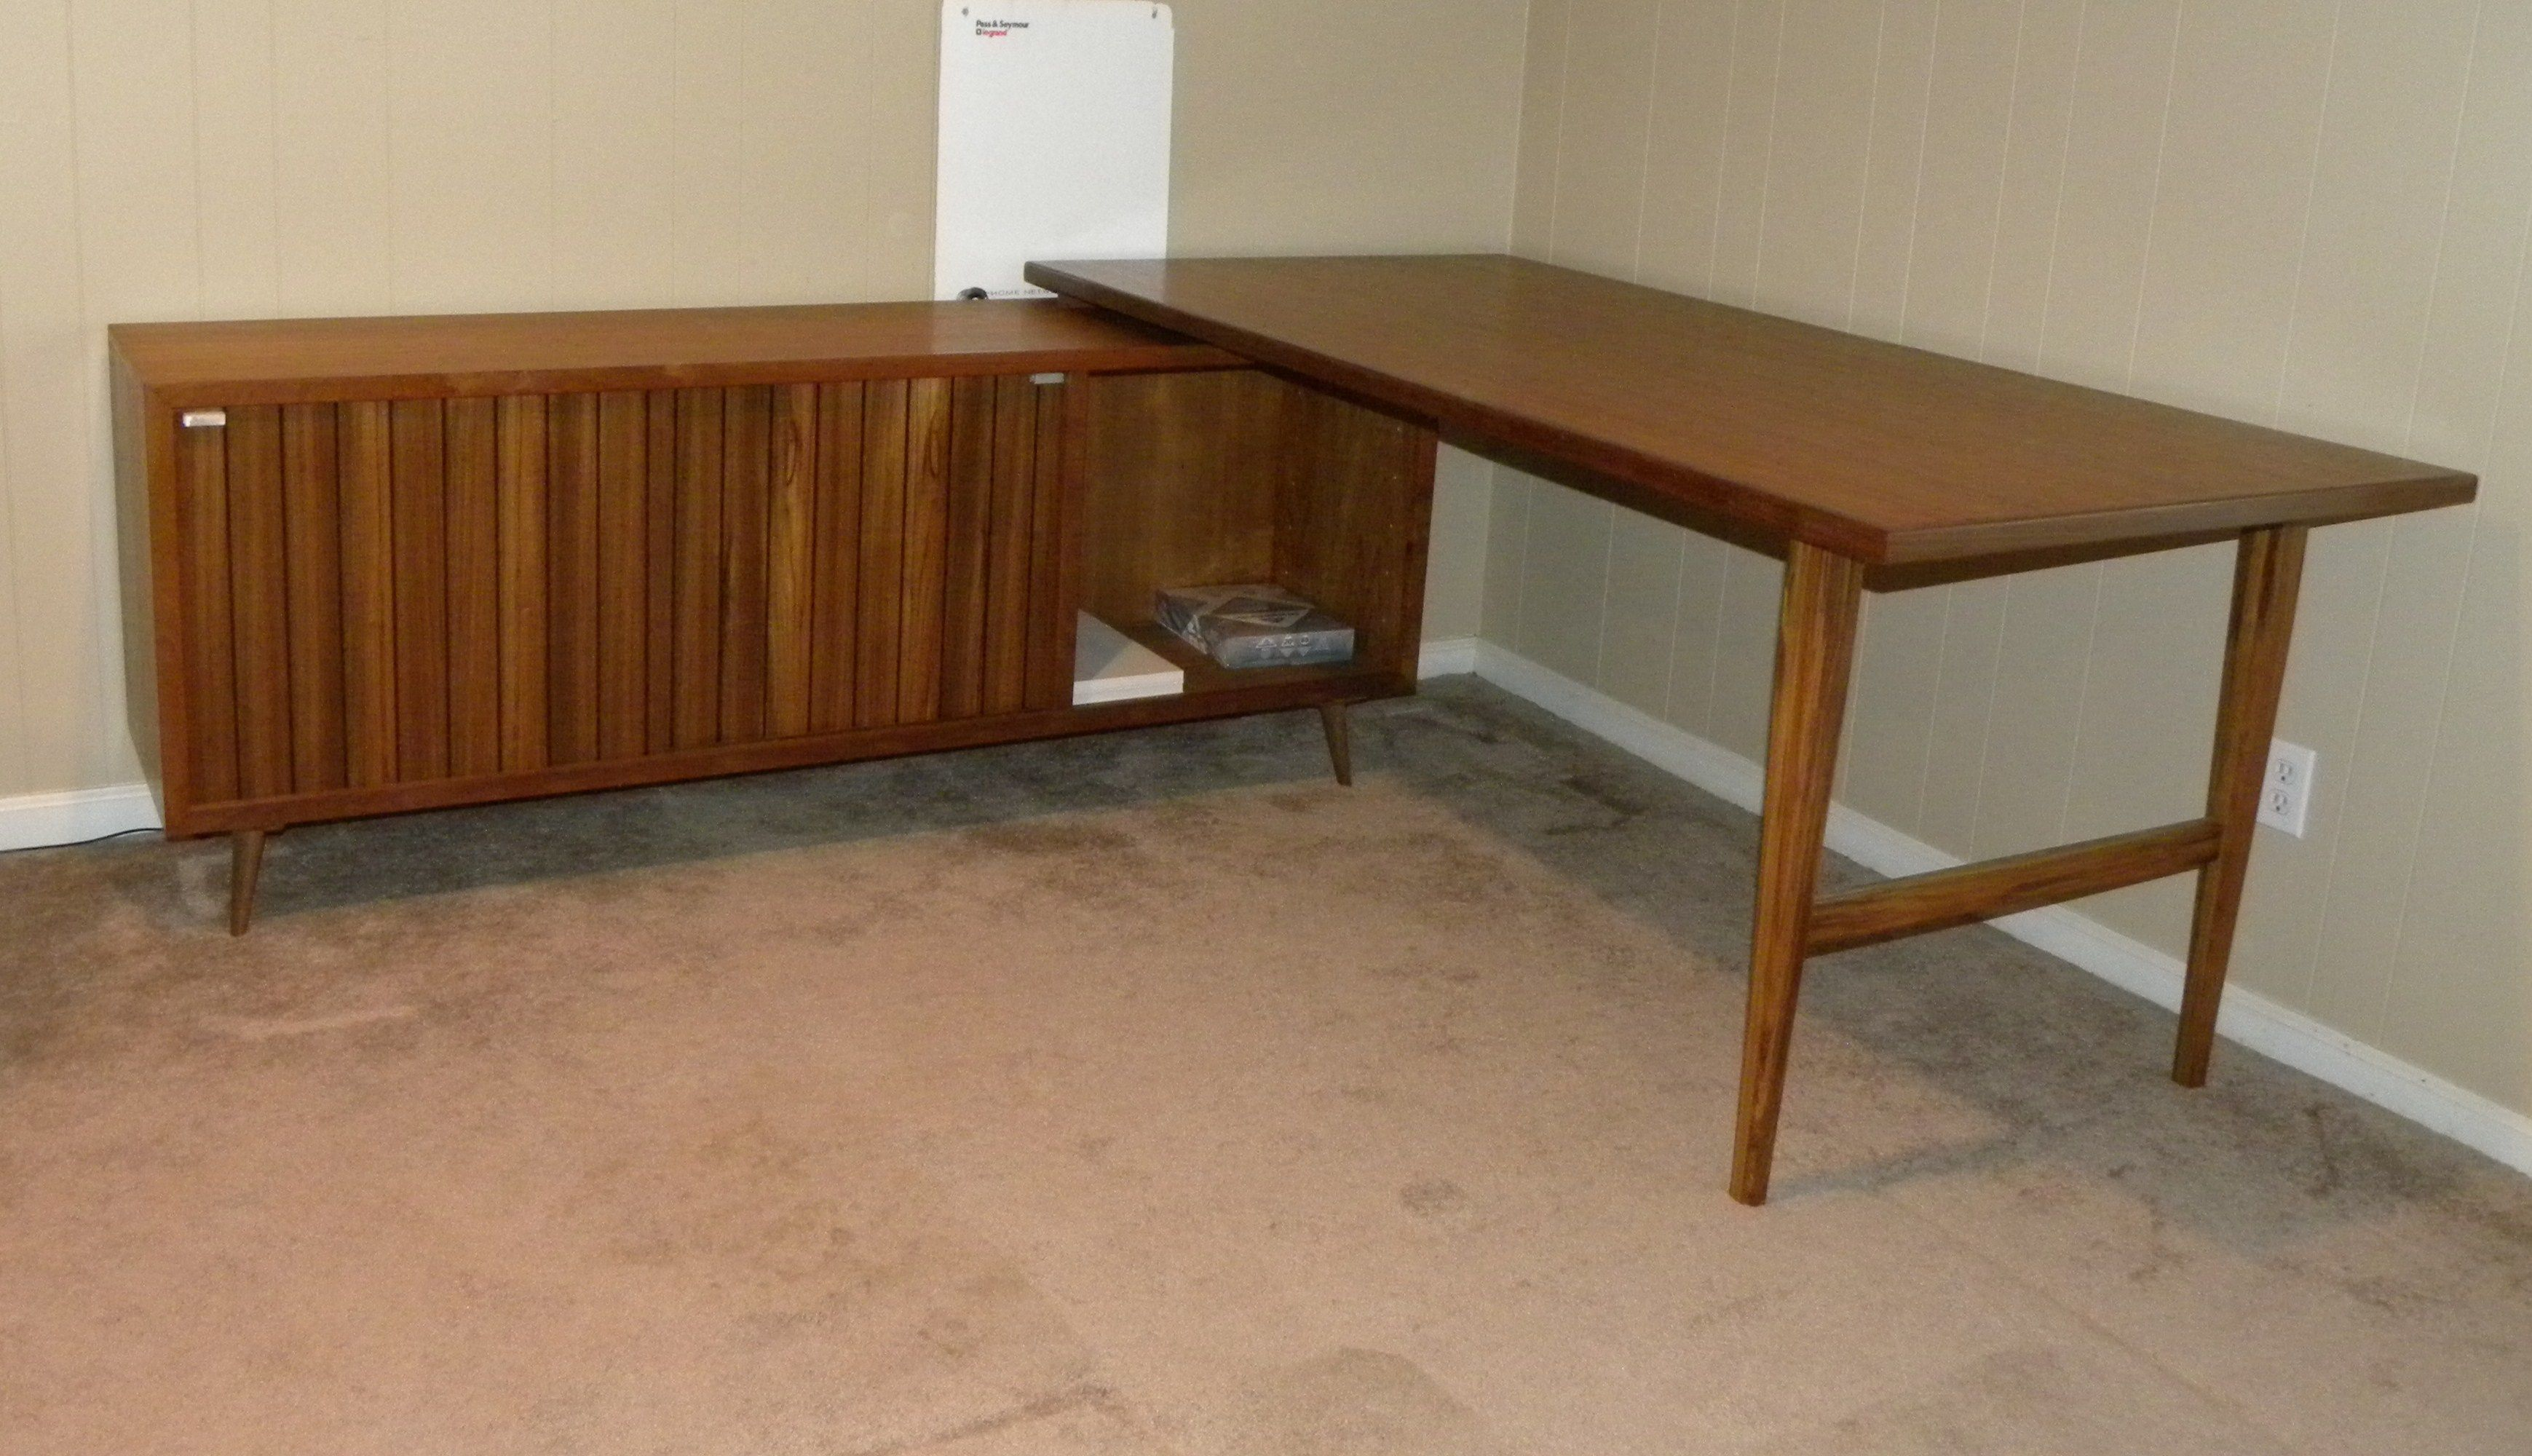 Mid Century Modern Executive Desk By Jens Risom Jens Risom Modern Executive Desk Desk Mid Century Furniture